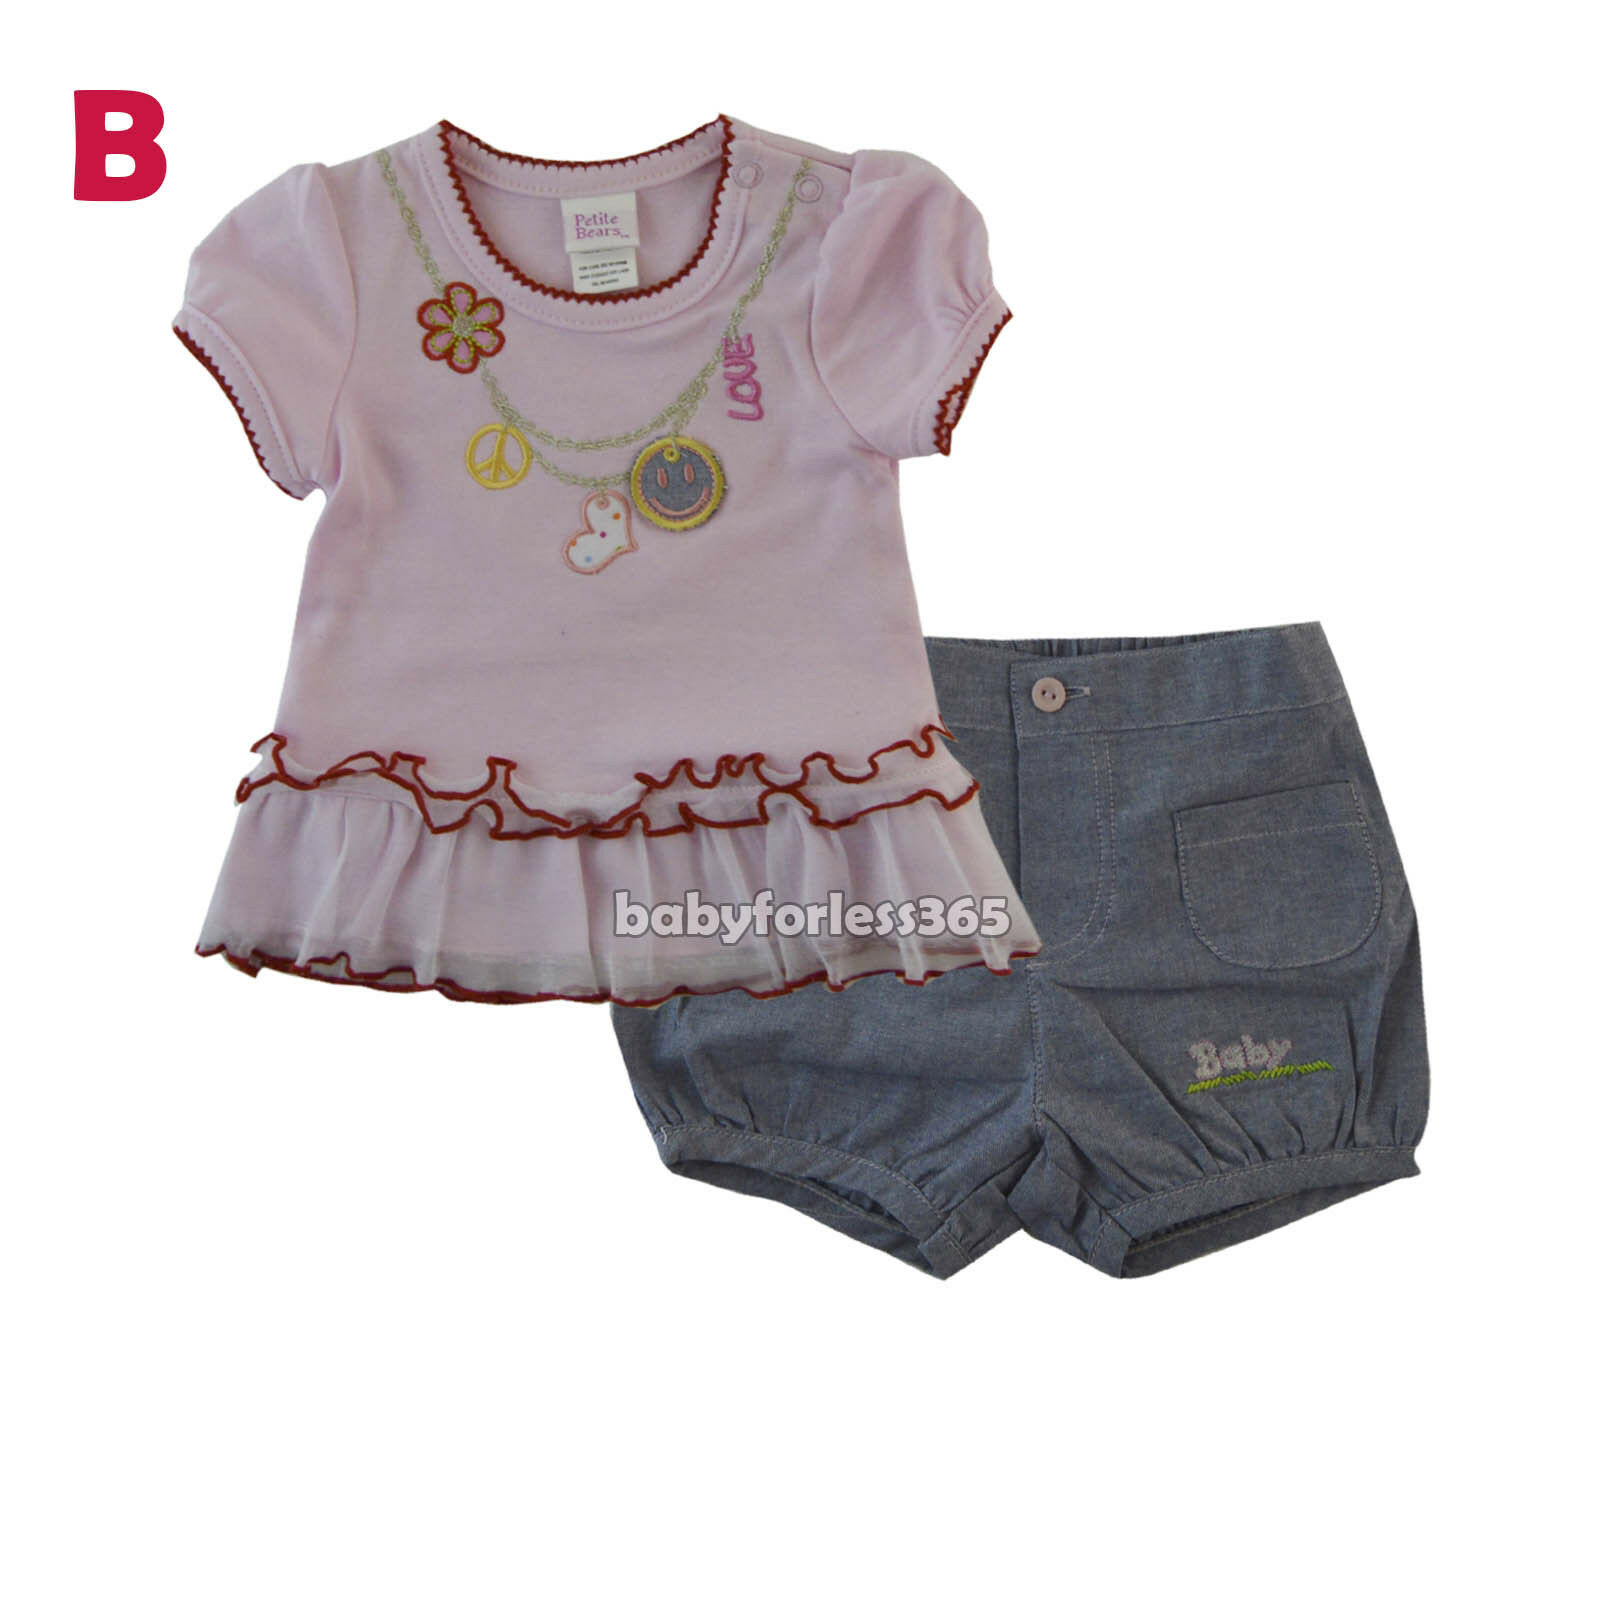 d3a7e68f5 New Baby Girls Outfits Clothes 2 Pieces Shirt Shorts Size 3 6 9 12 ...